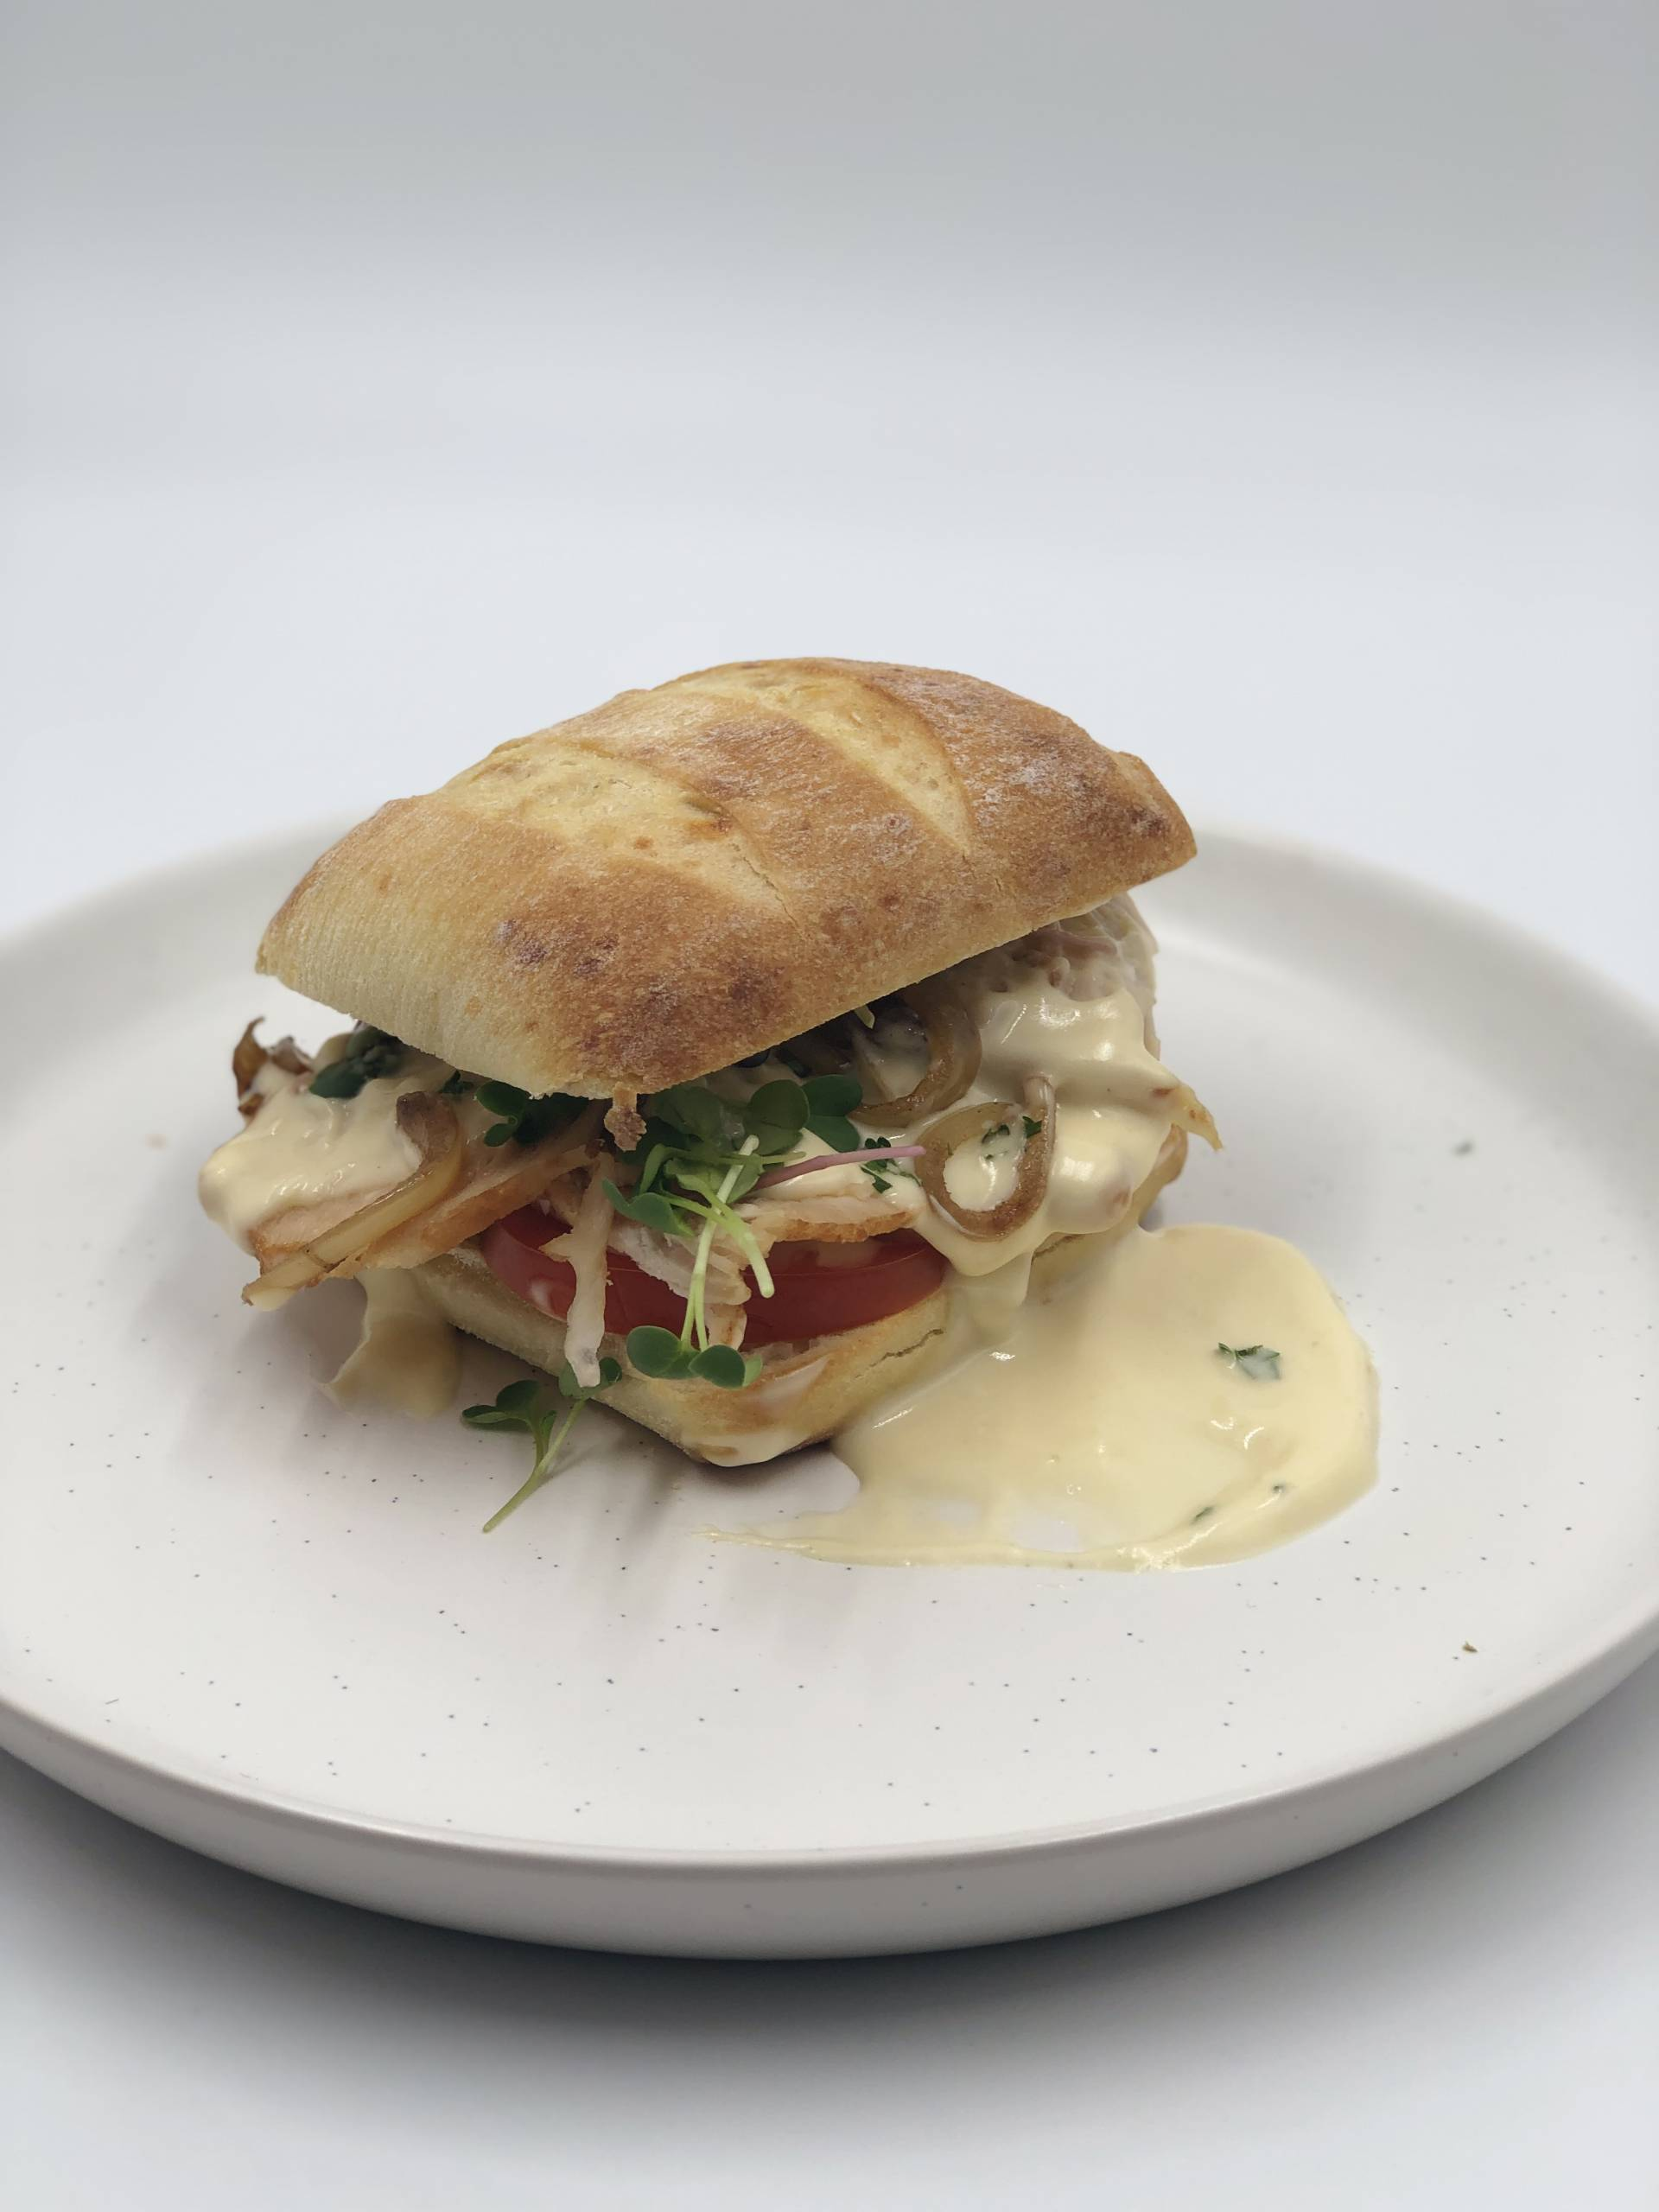 Ciabatta Turkey Sandwich | Served with Cheesy Mornay Sauce on the Side